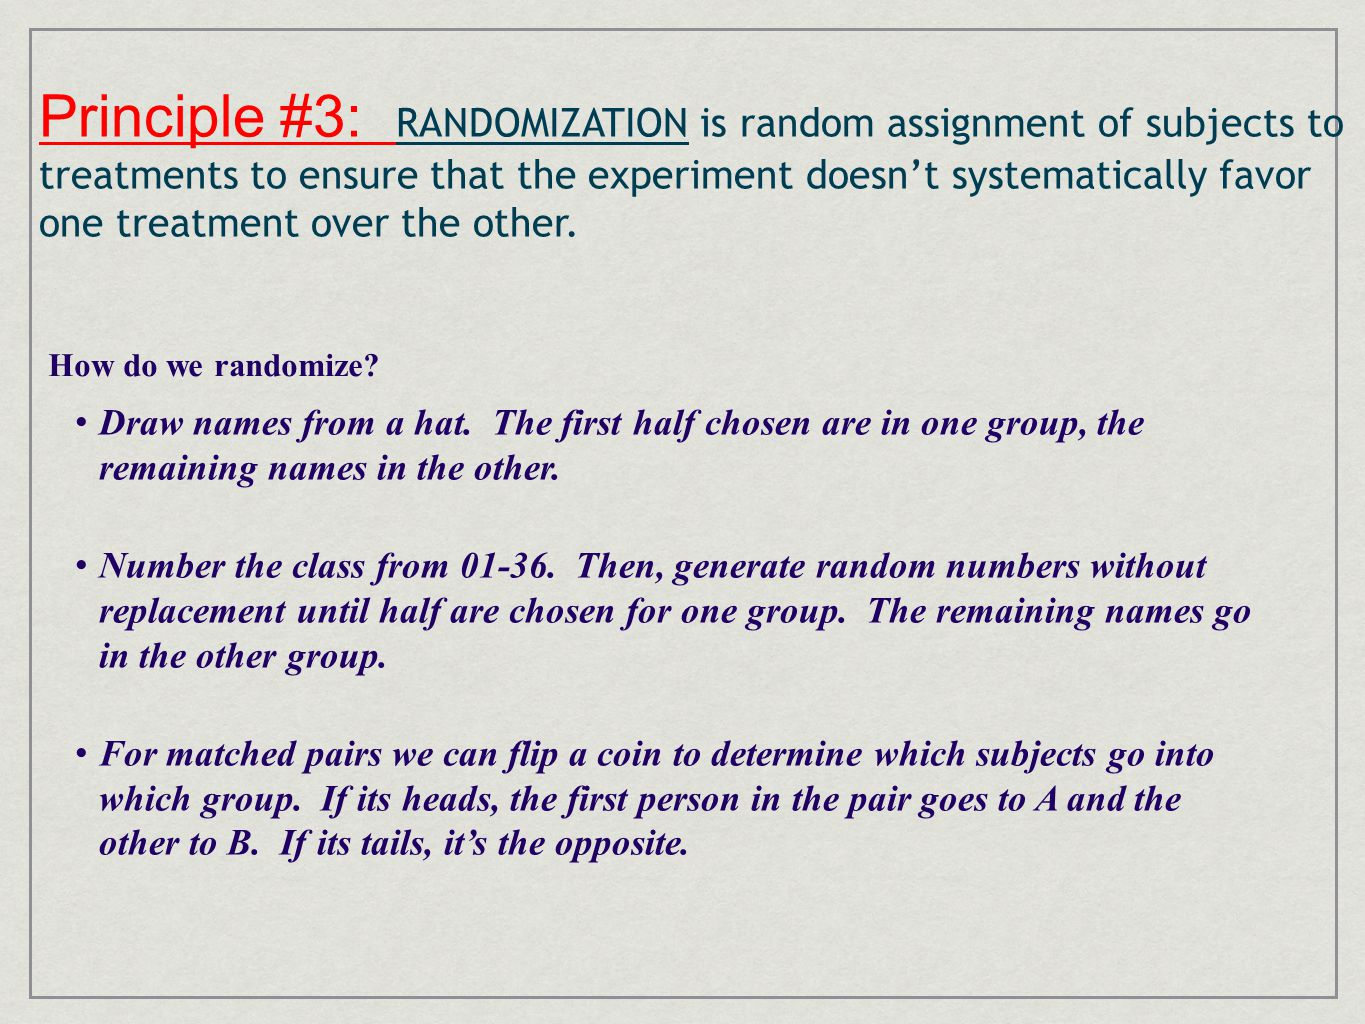 Principle #3: RANDOMIZATION is random assignment of subjects to treatments to ensure that the experiment doesn't systematically favor one treatment ov